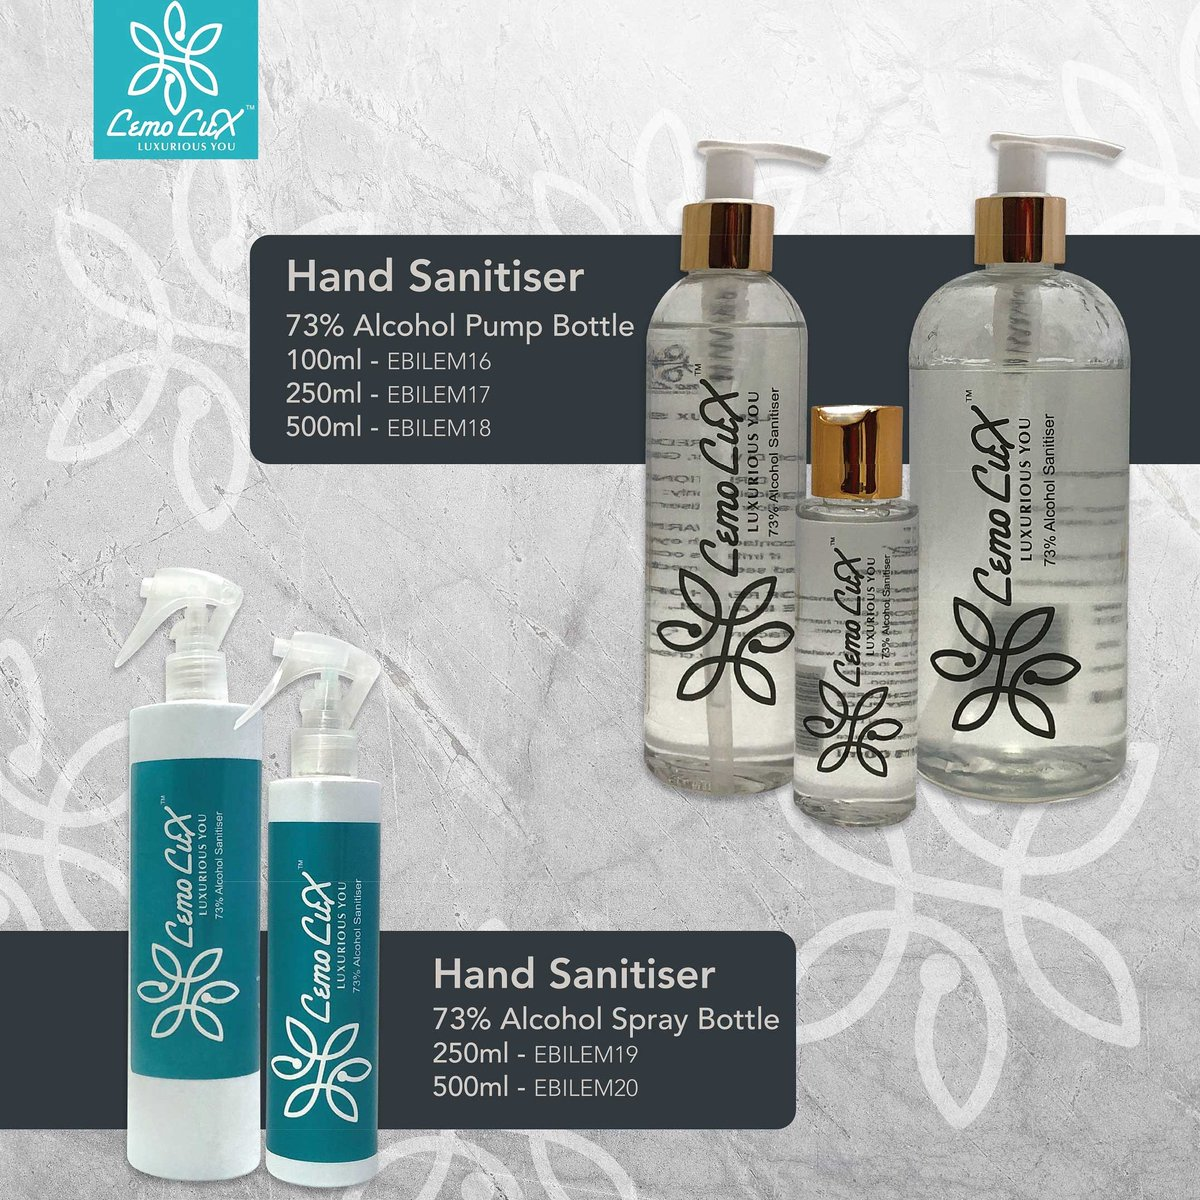 You get infected with germs from whatever you touch. The best solution for you is to sanitize your hands with lemoux Hand Sanitiser to enjoy complete protection against infectious germs.   Order yours now: info@chemfresh.co.za  #madeinalex #mylemolux https://t.co/9THoAUugr4